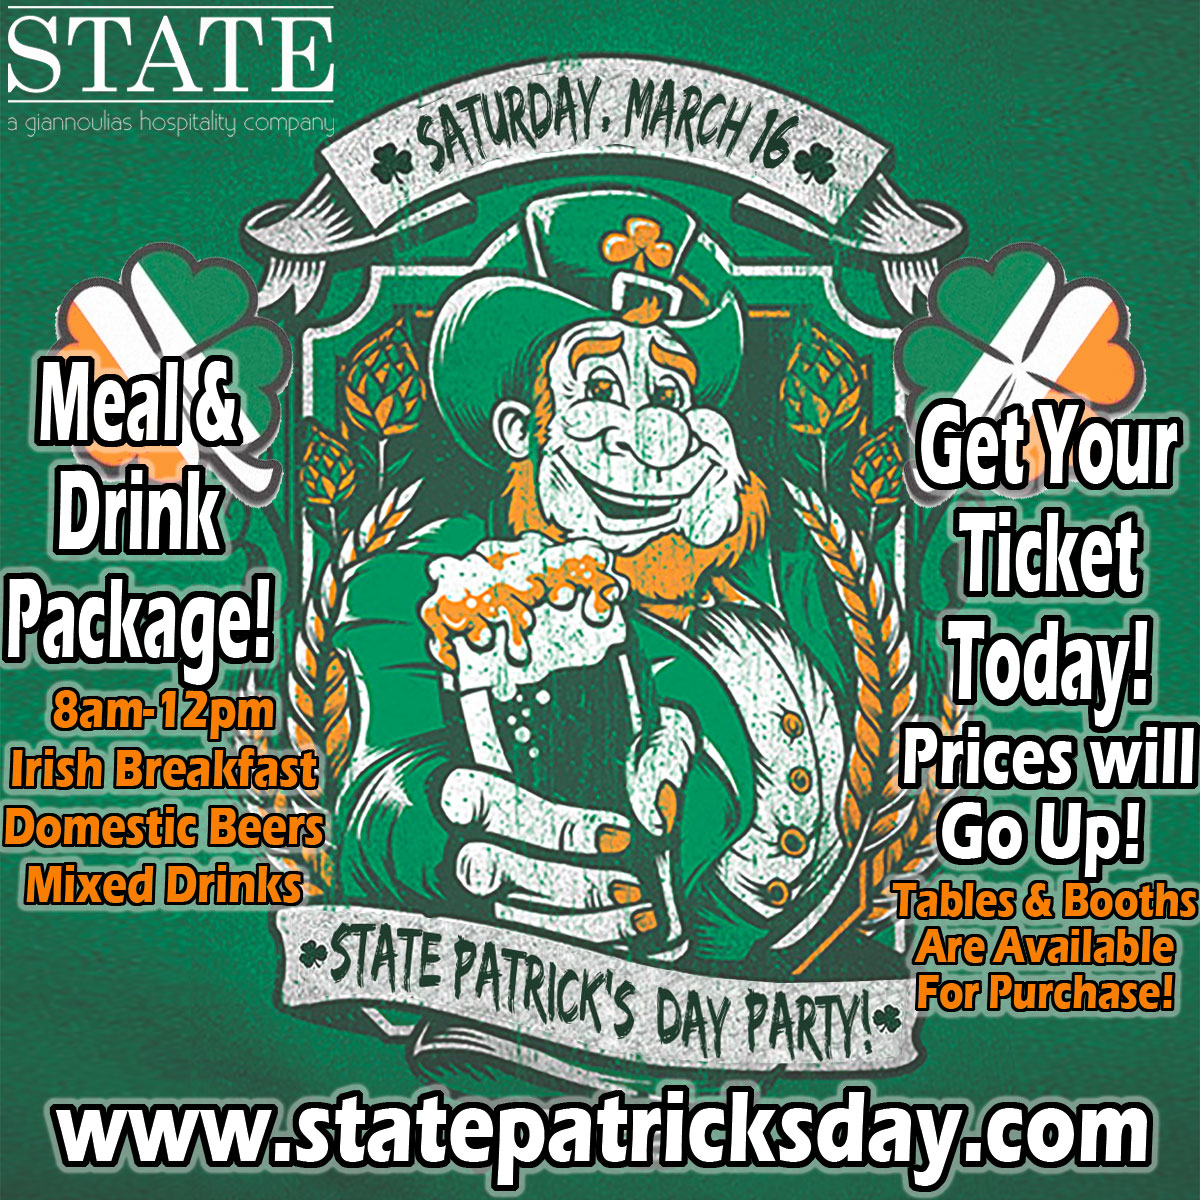 State Patrick's Day Party - Meal and Drink package will include an Irish Breakfast, Domestic Beers and Mixed Drinks!